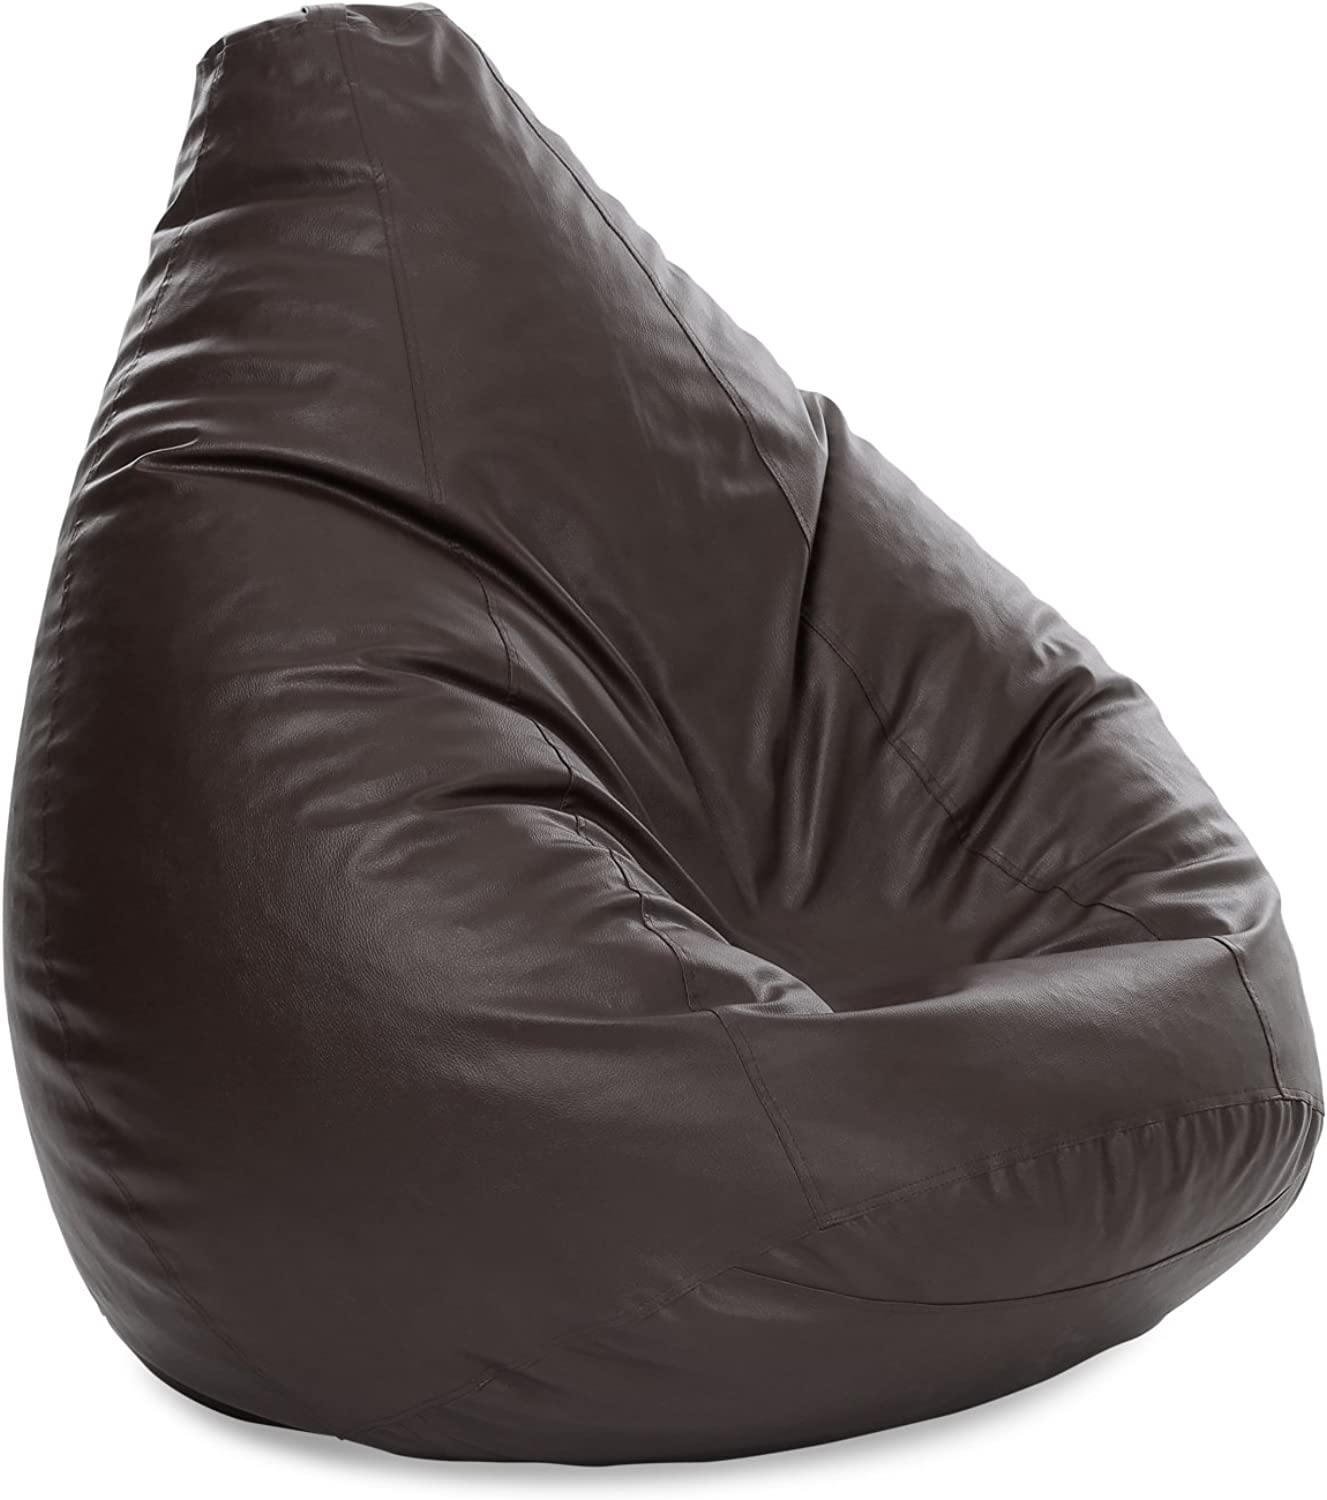 Style Homez Jumbo SAC Bean Bag Chocolate Brown color Cover Only